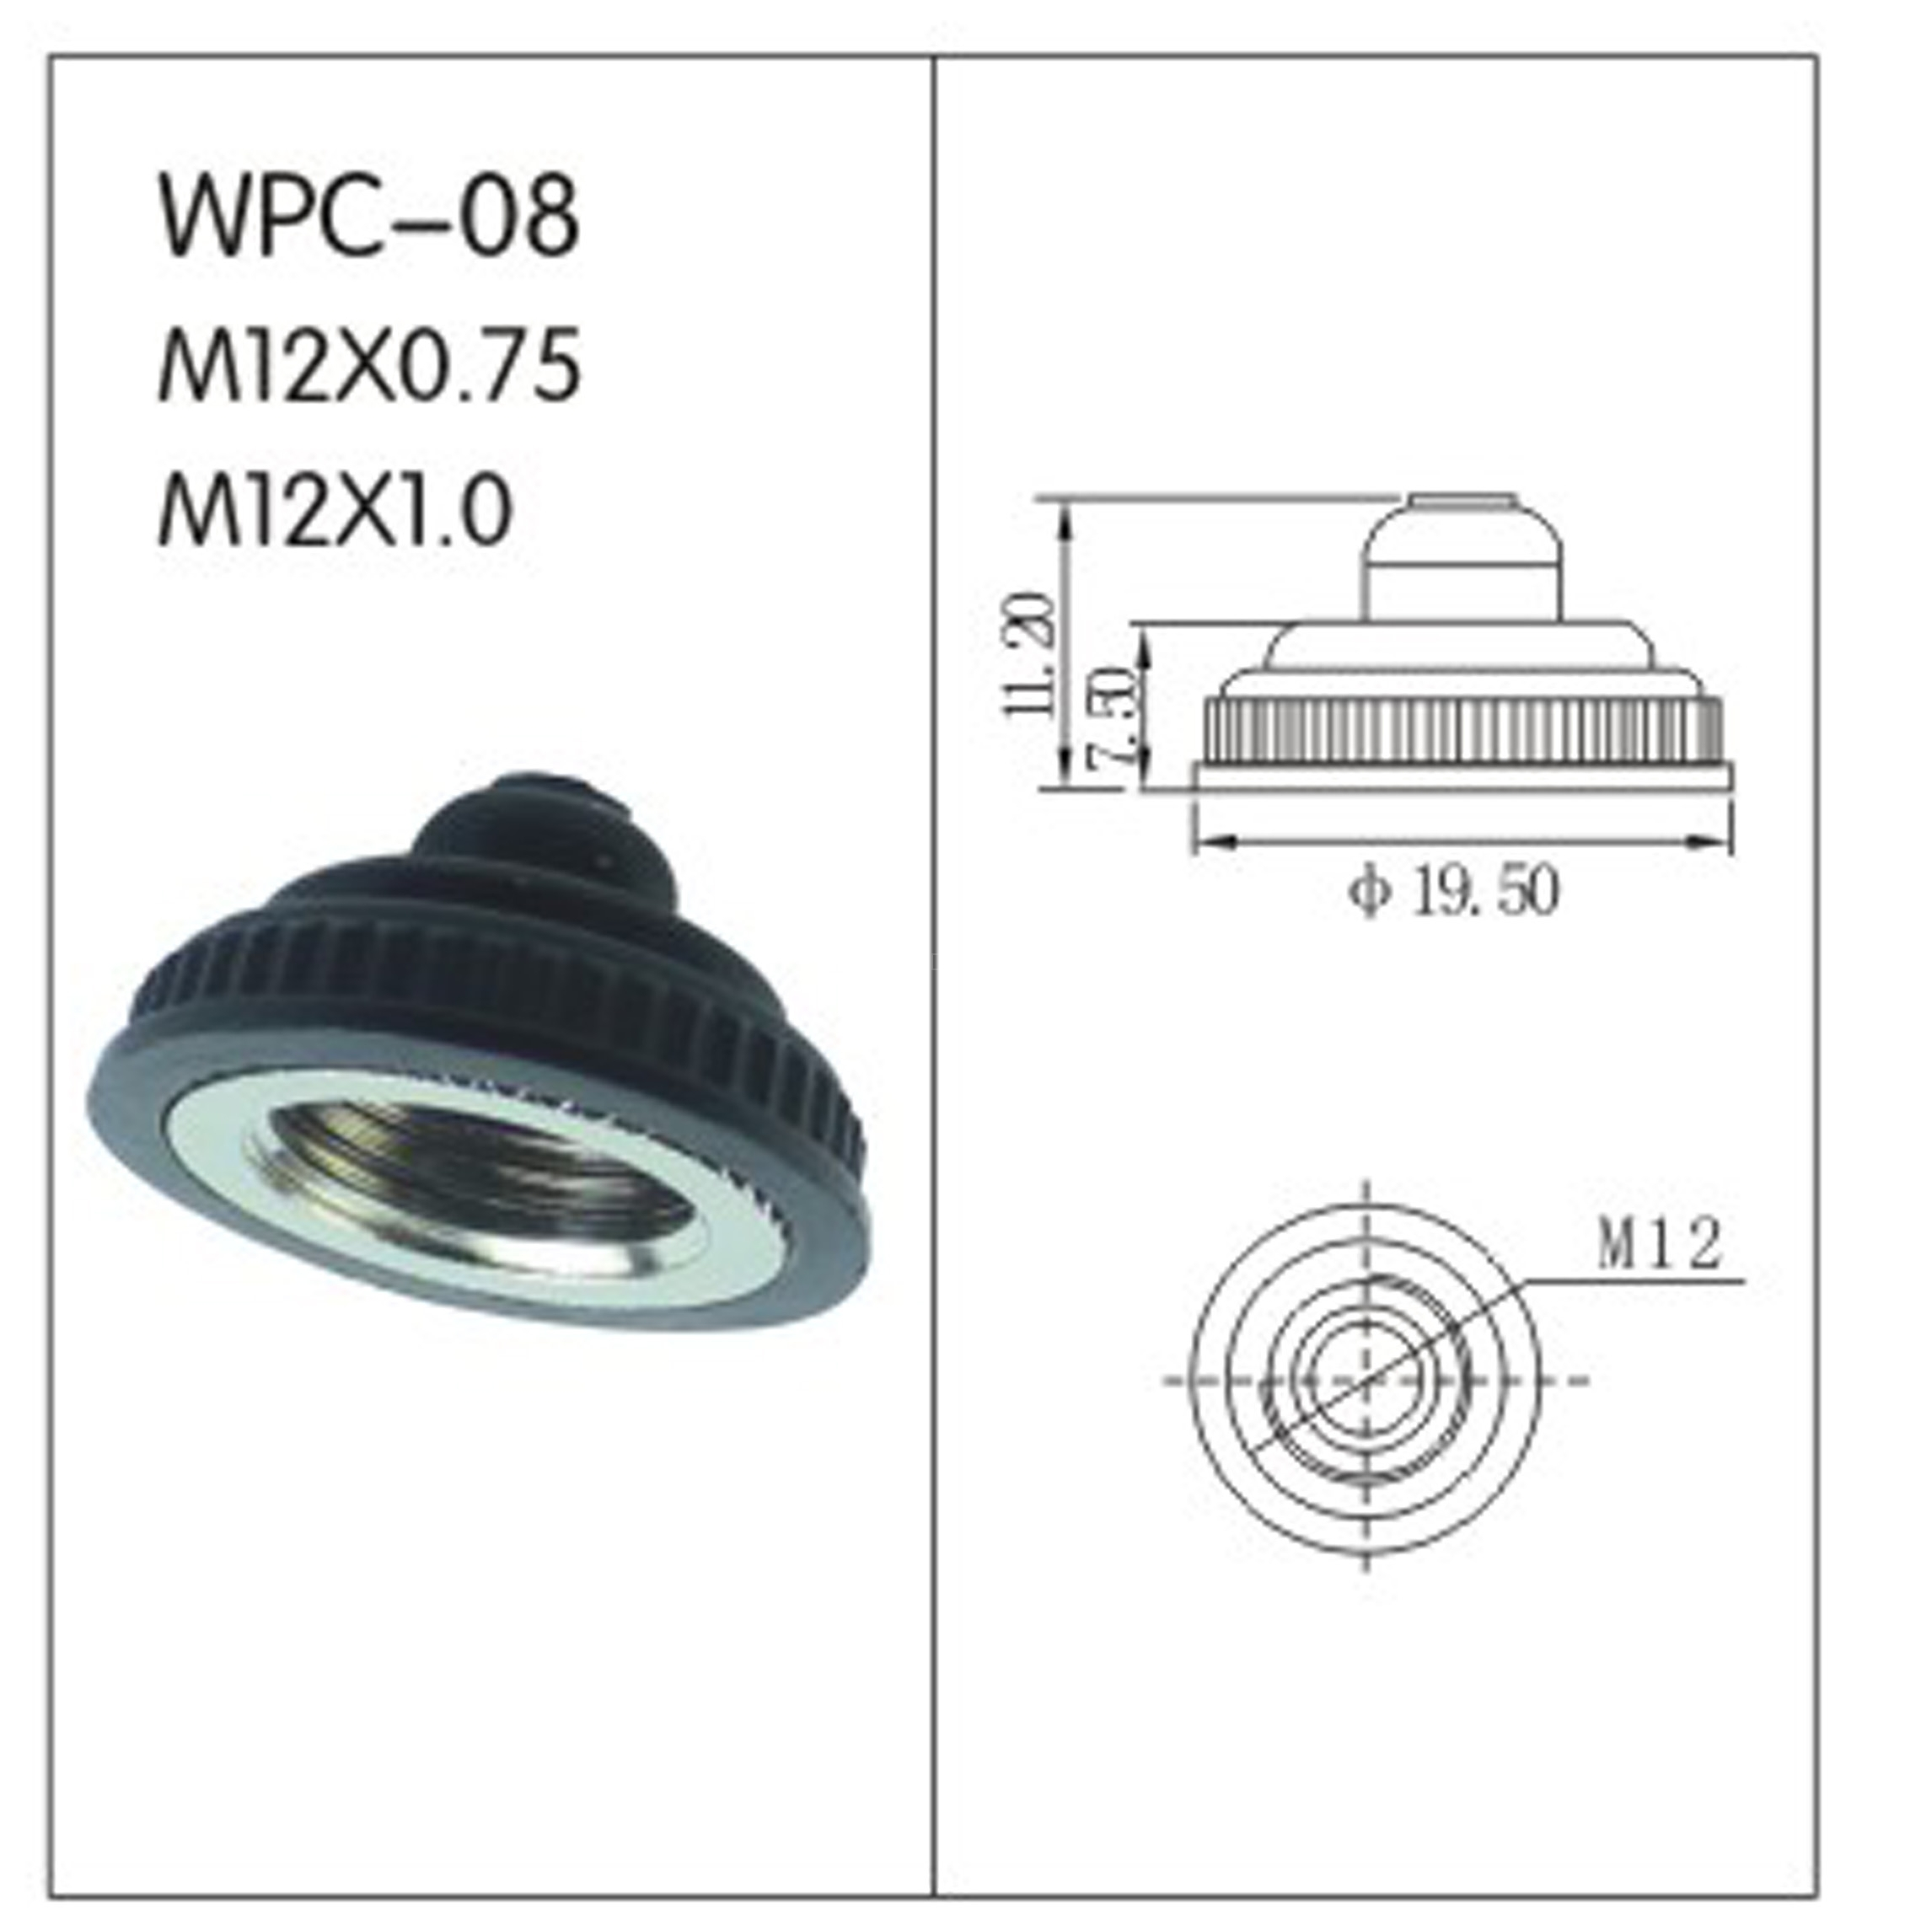 WPC-08